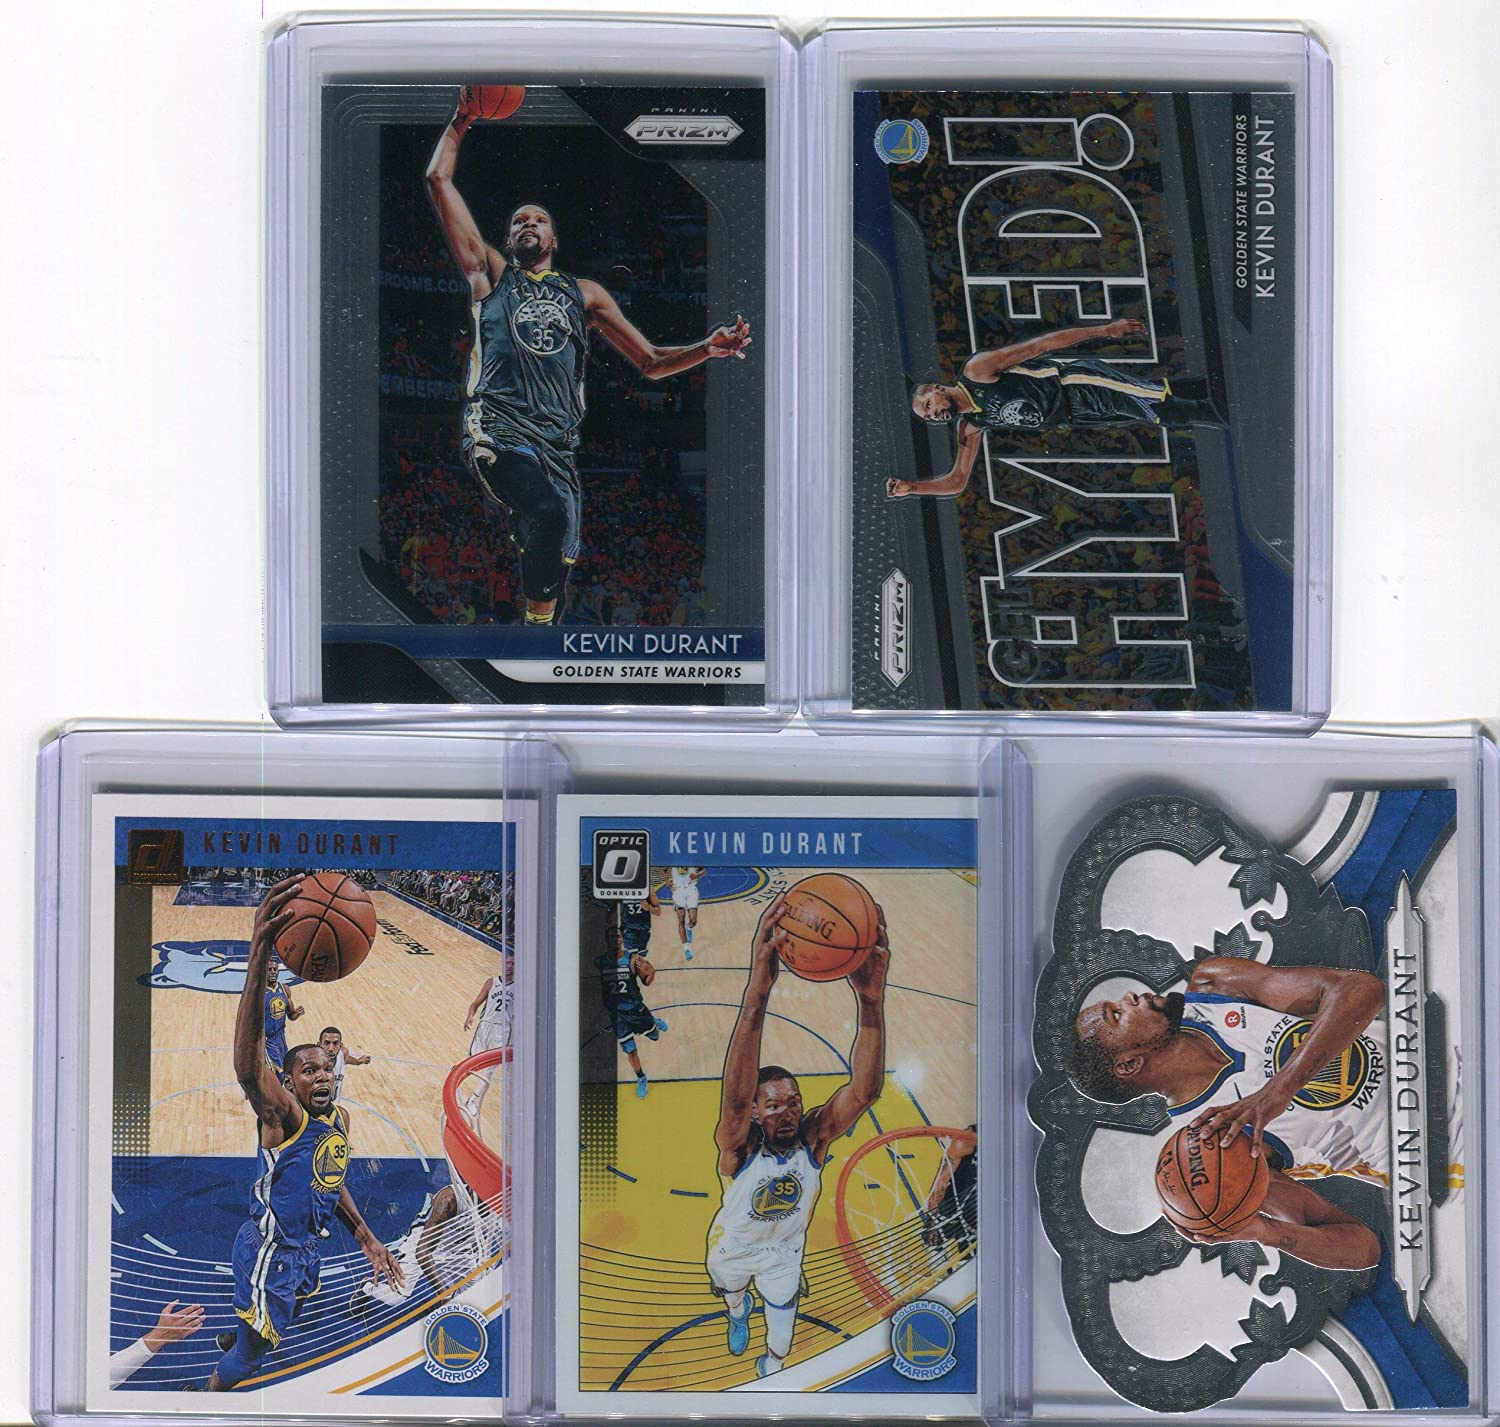 Kevin Durant Golden State Warriors Assorted Basketball Cards 5 Card Lot